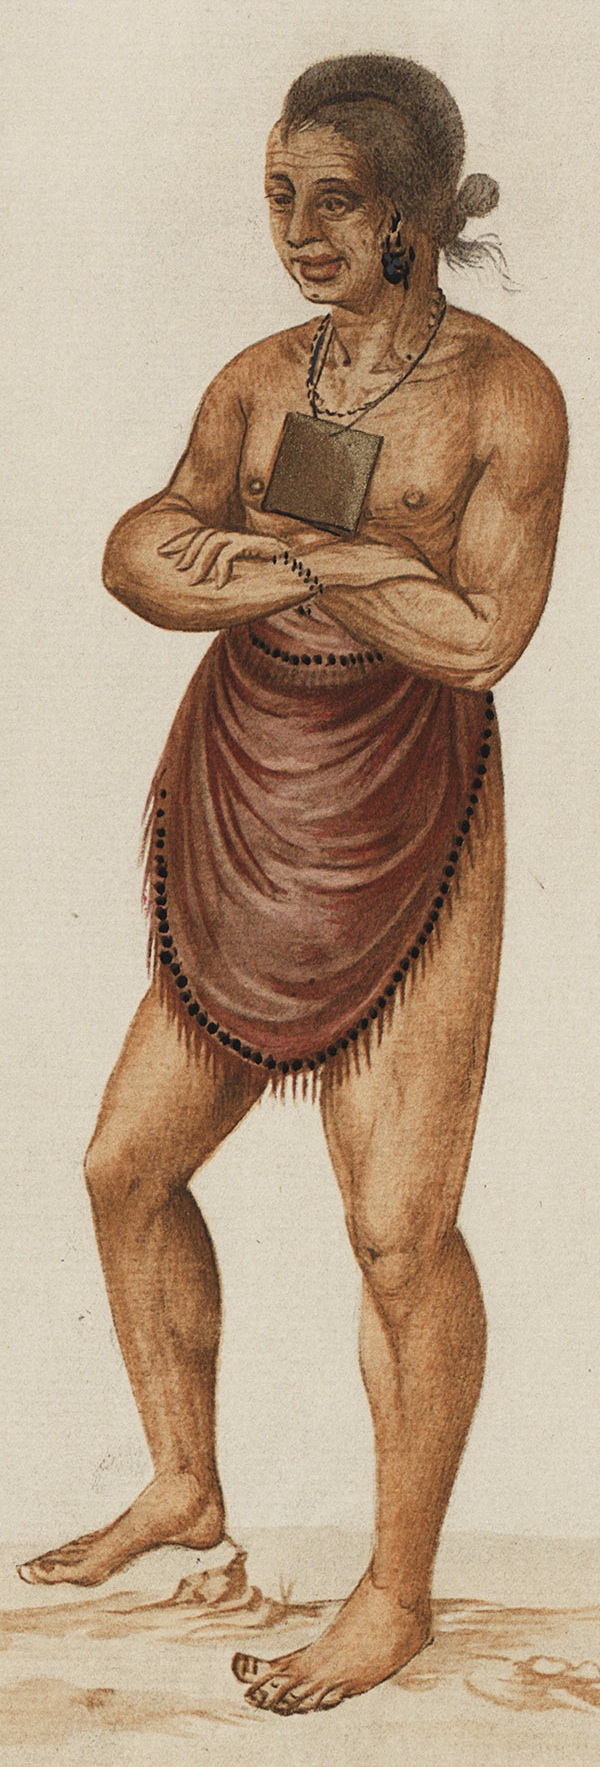 A watercolor of Pemisapan by John White. Image from East Carolina University Libraries.